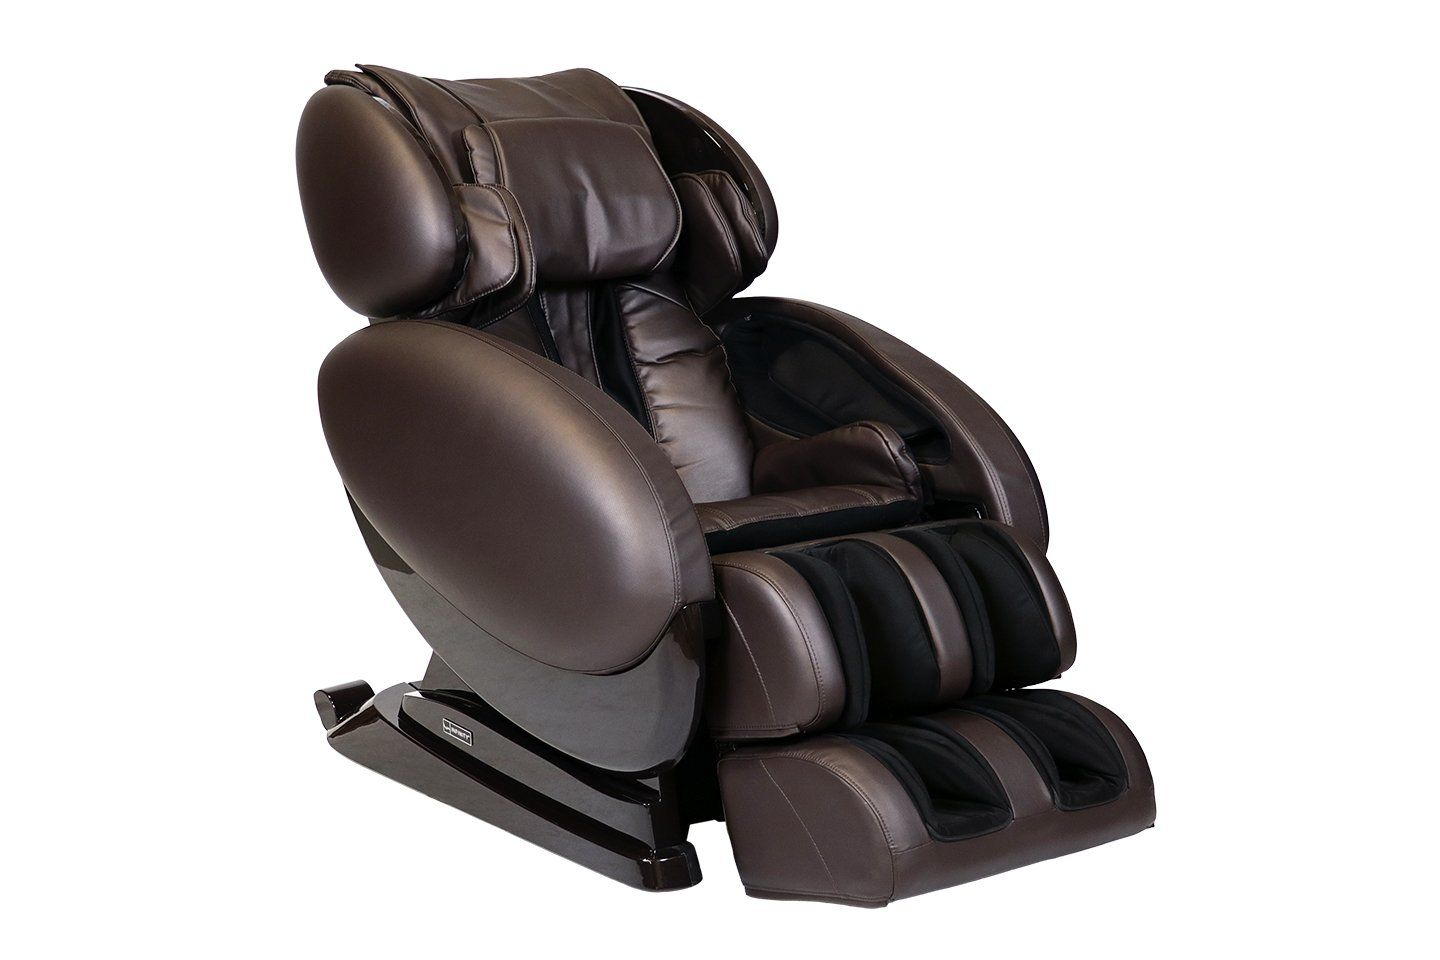 Infinity It 8500 X3 Full Body Zero Gravity 3d Massage Chair Featuring Air Compression Decompression Stretch Lumbar Heat In 2020 Massage Chair Massage Chairs Massage